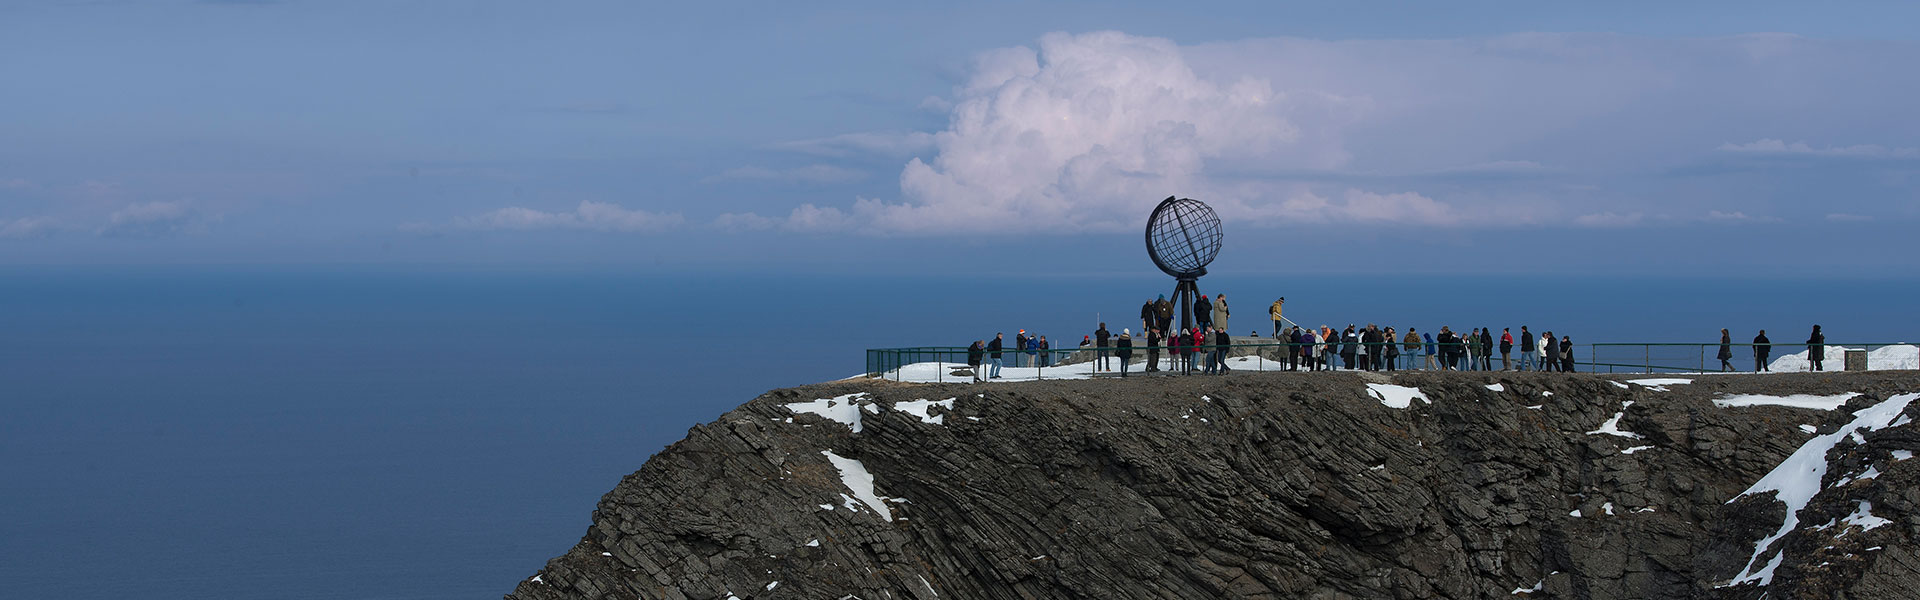 967d3fb5 Photo: Morten Broks / Visit Nordkapp